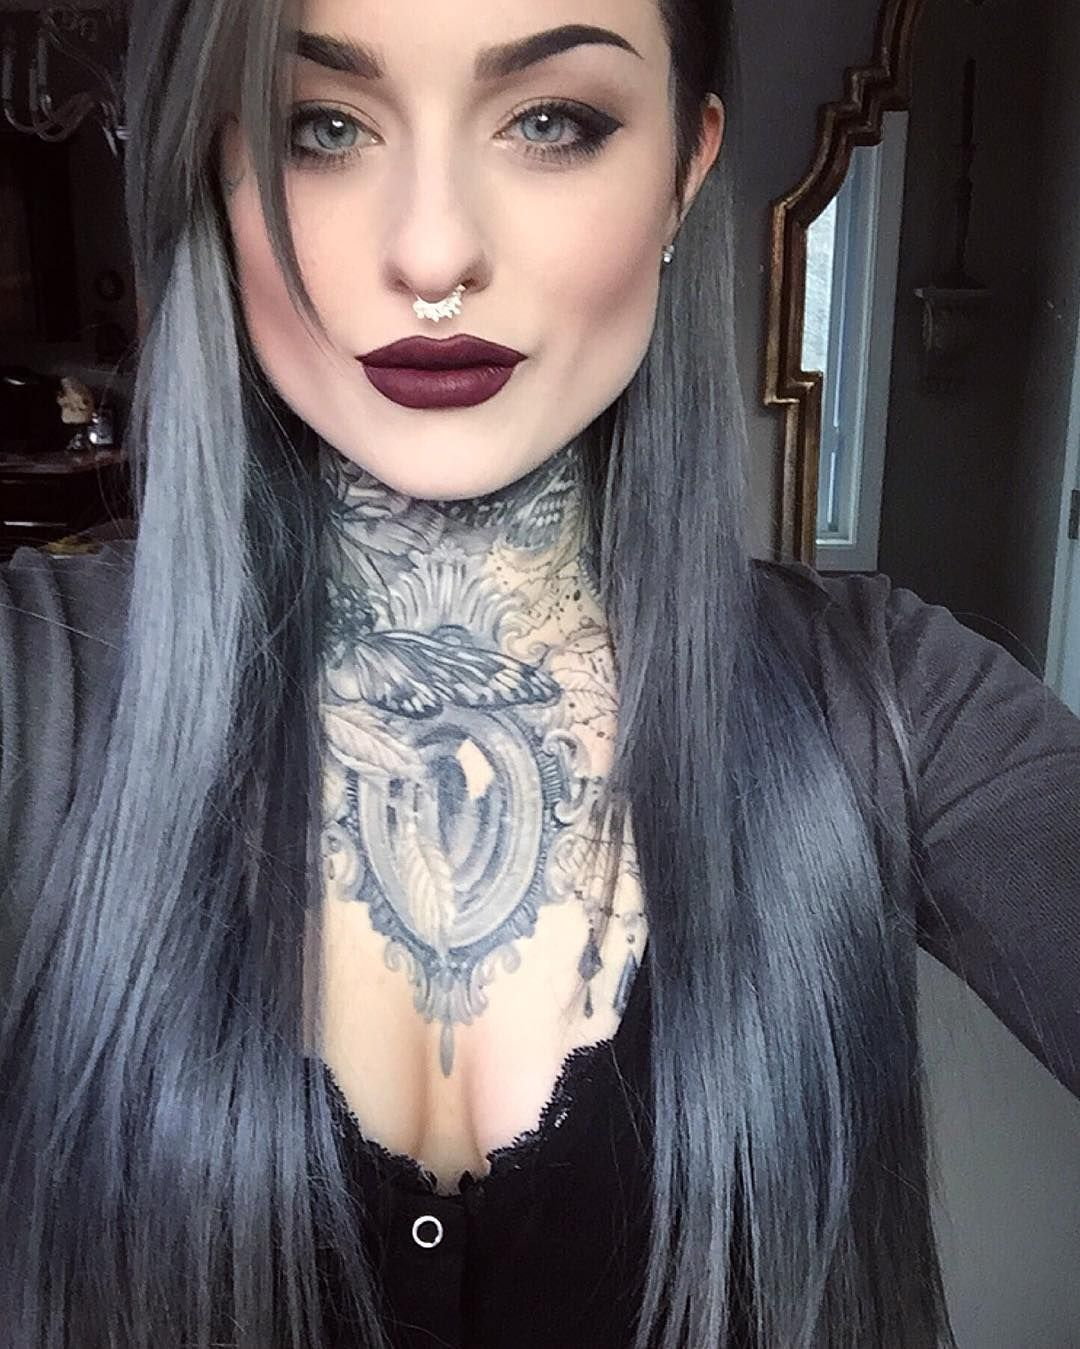 Love Her Dark Lipstick Colors And On Point Eye Makeup If Only I Could Be This Put Together Girl Tattoos Dark Lipstick Dark Lipstick Colors